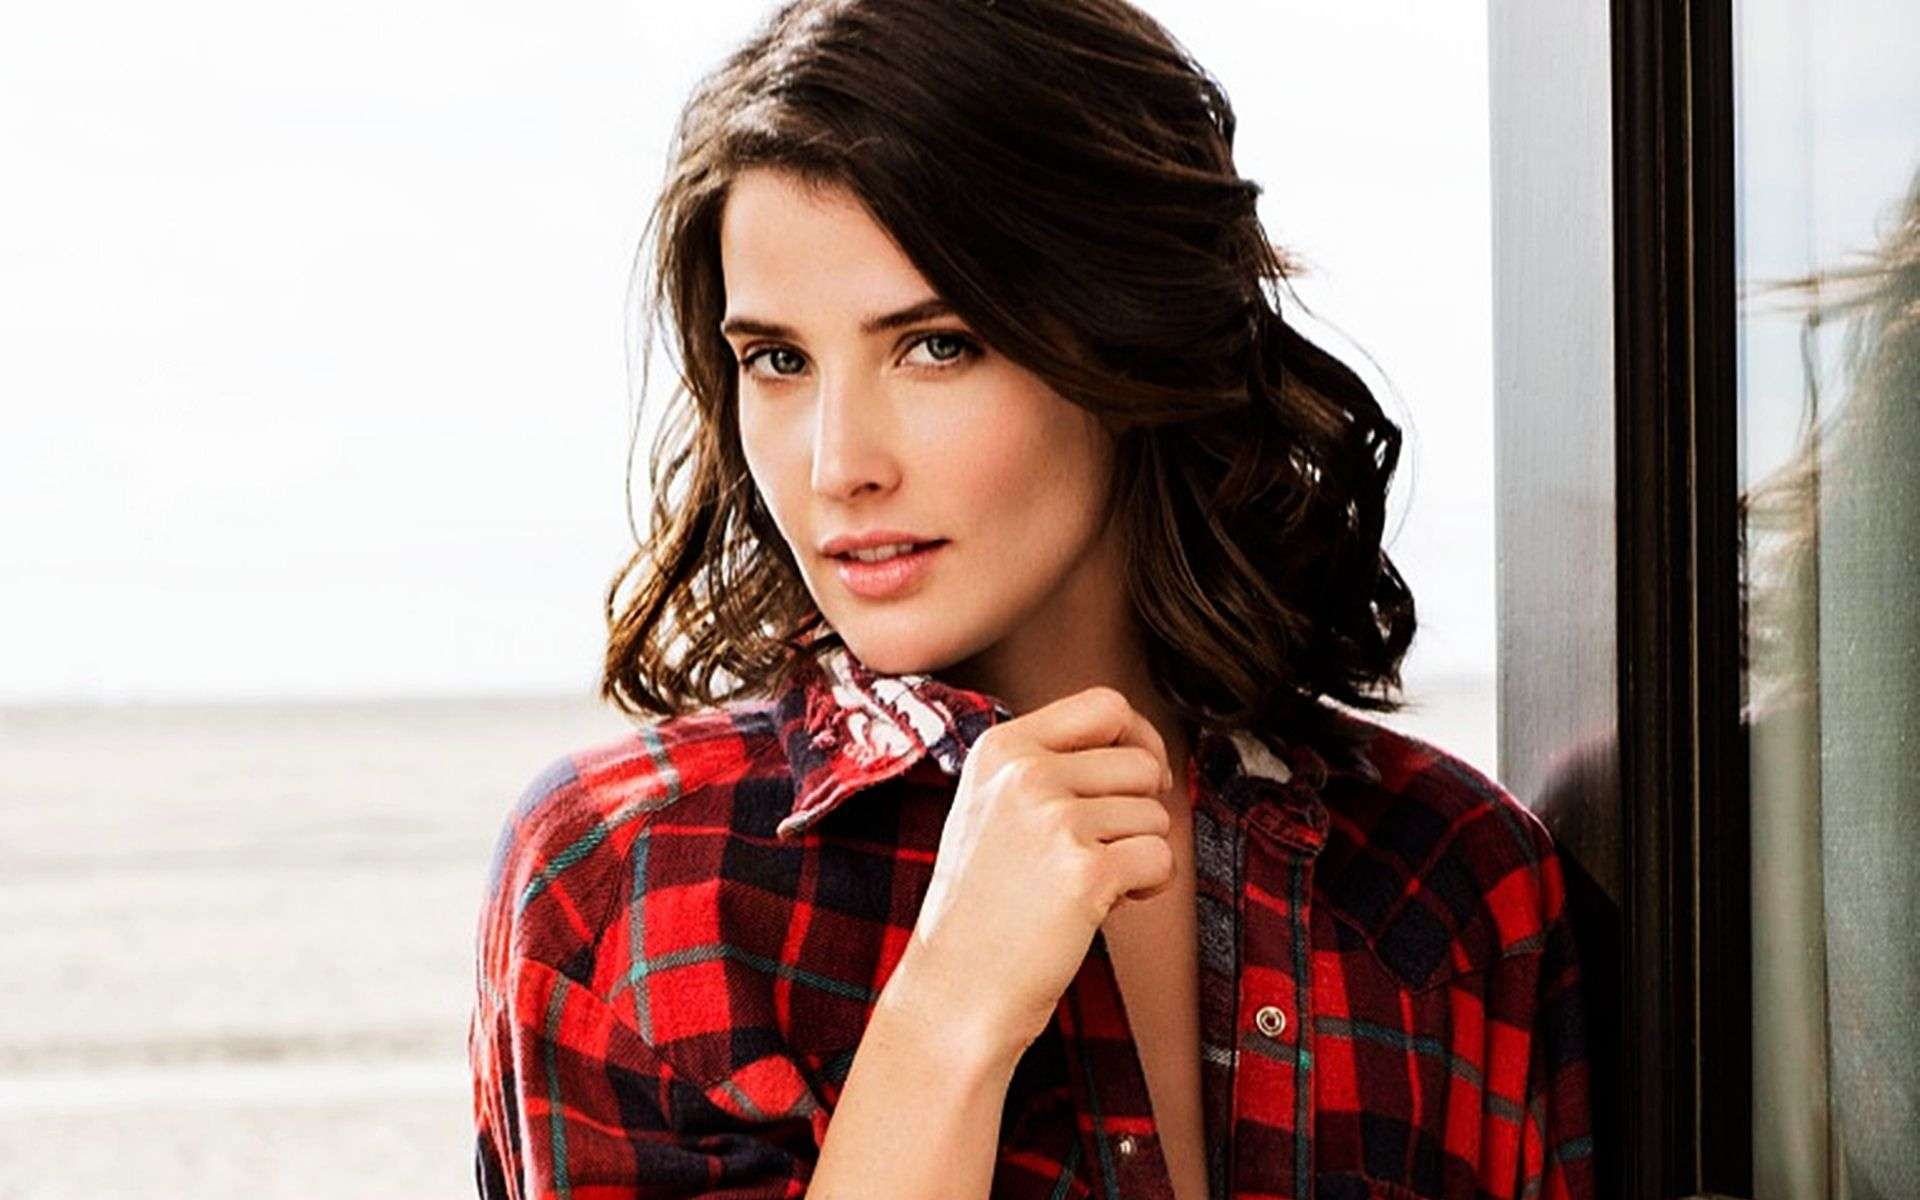 Cobie Smulders HD Images AMBWallpapers 1920x1200